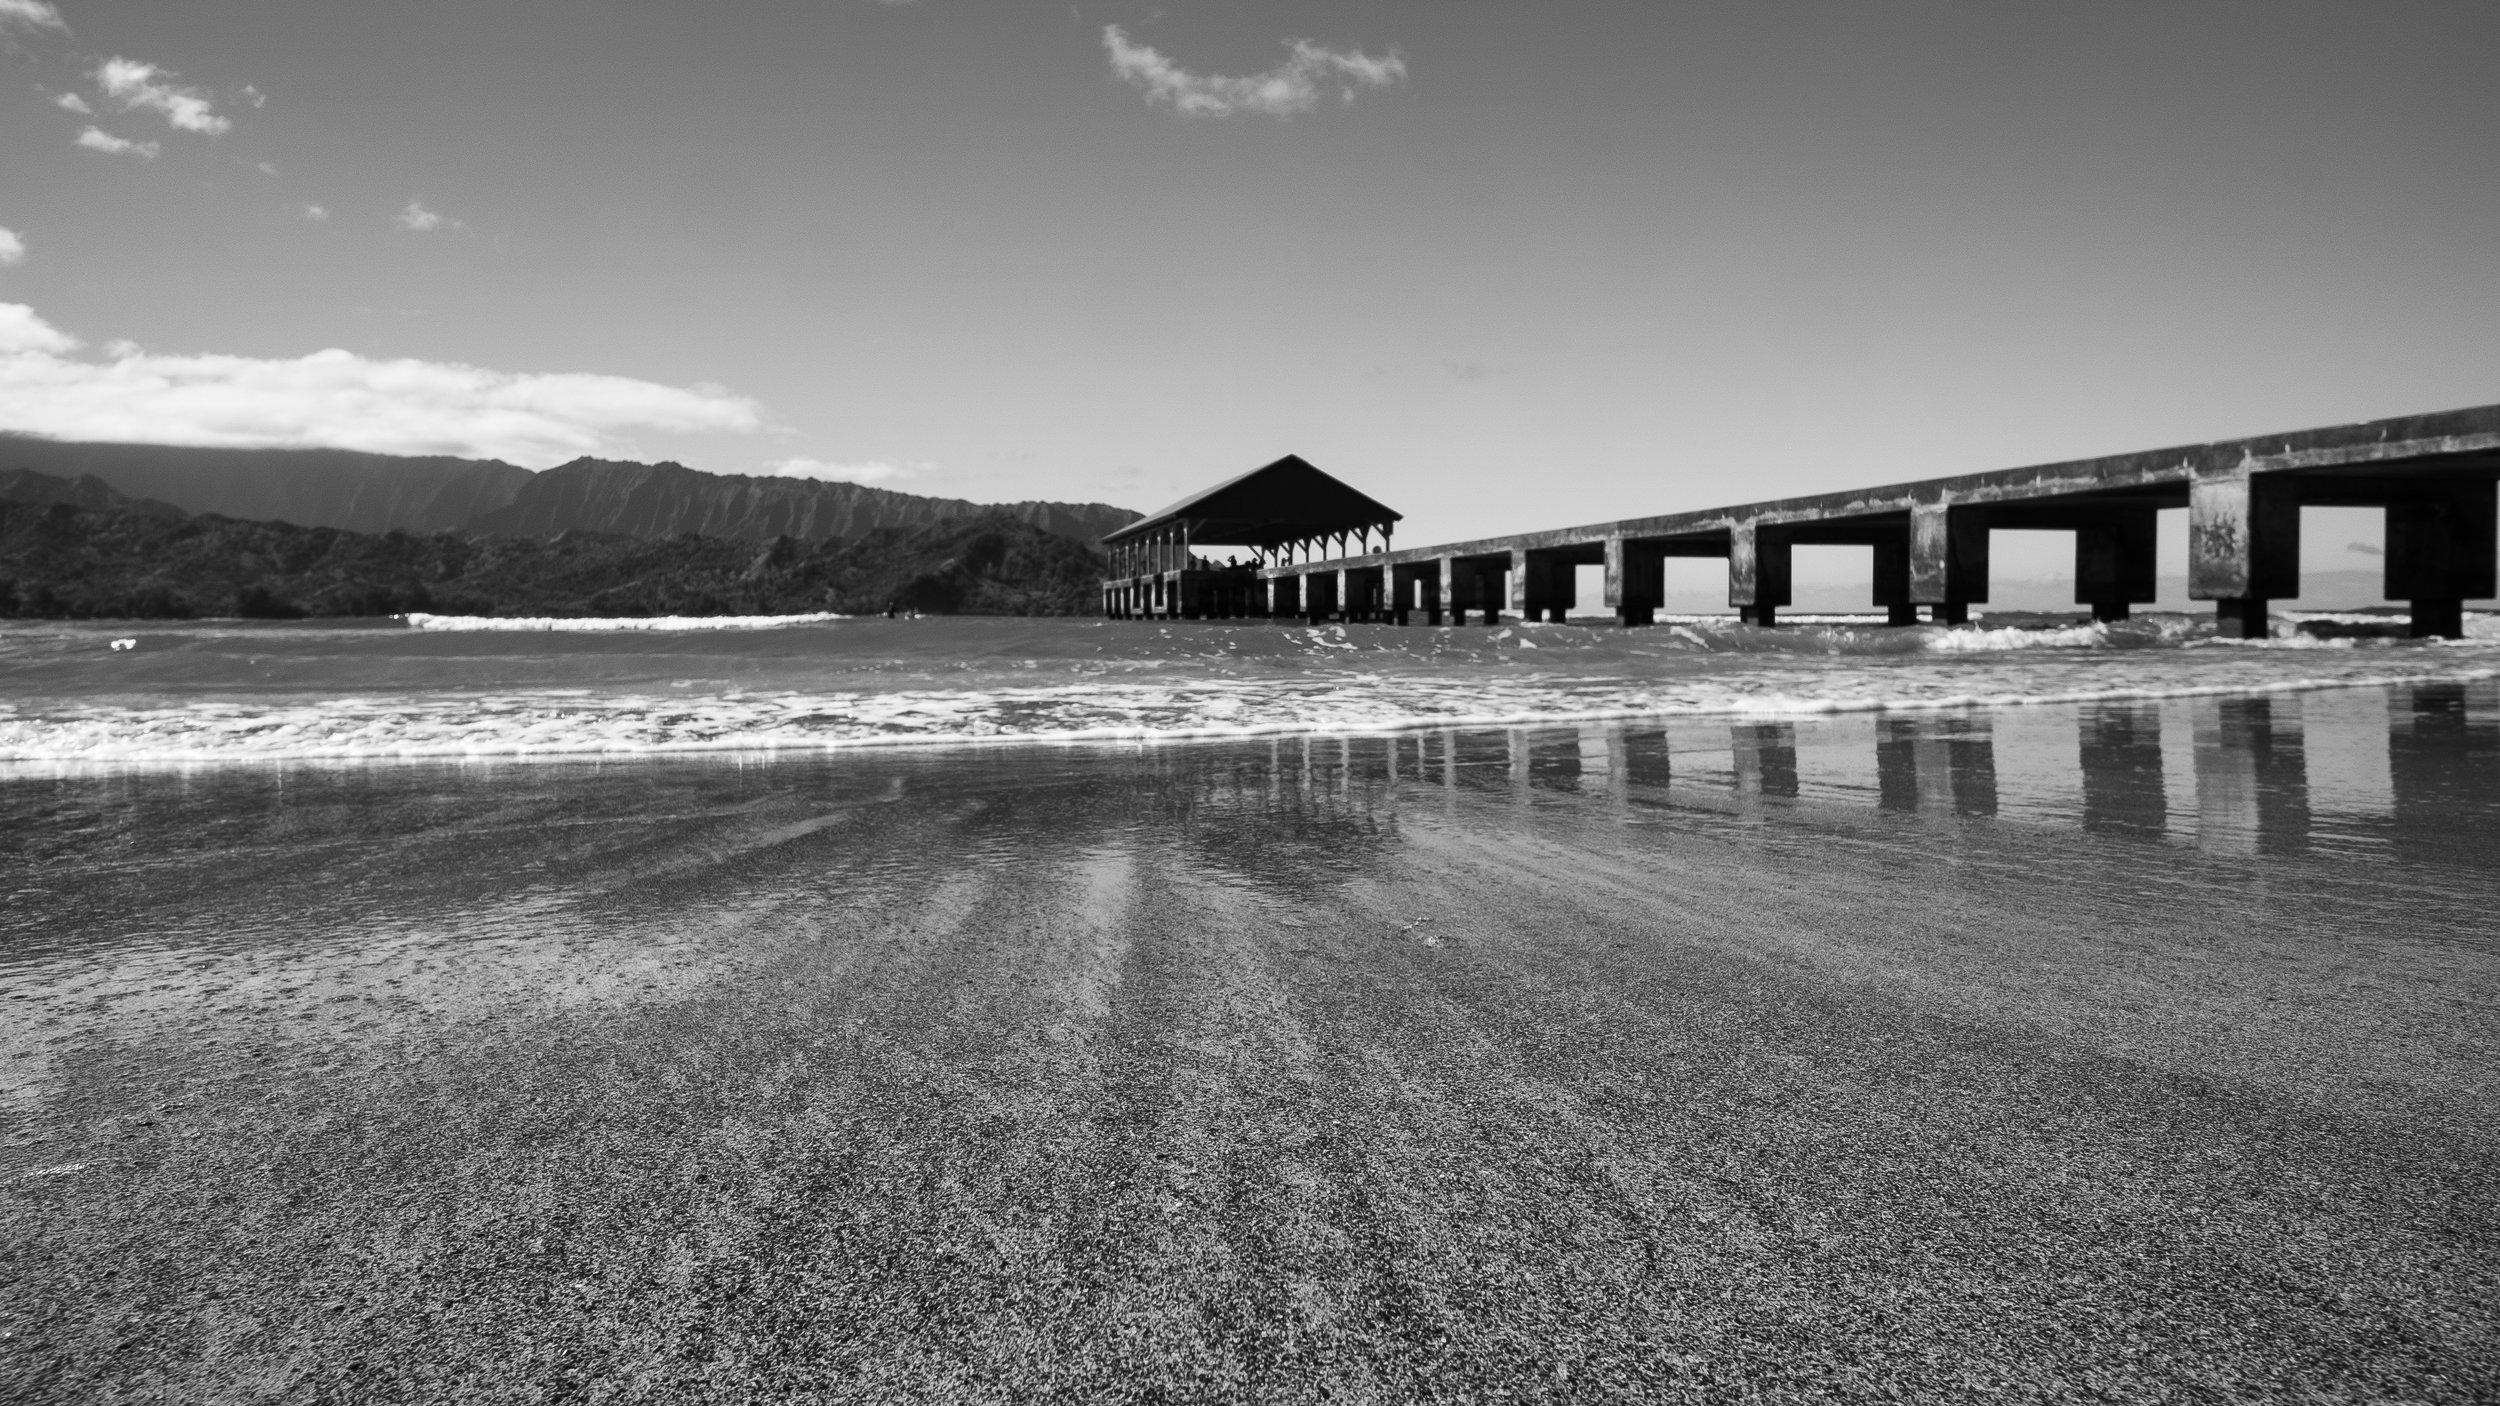 Hannalei Pier  Camera: Fujifilm X-T1 Shutter speed: 1/160 sec Aperture: f/9 ISO: 200 Photo: Jeff Carlson